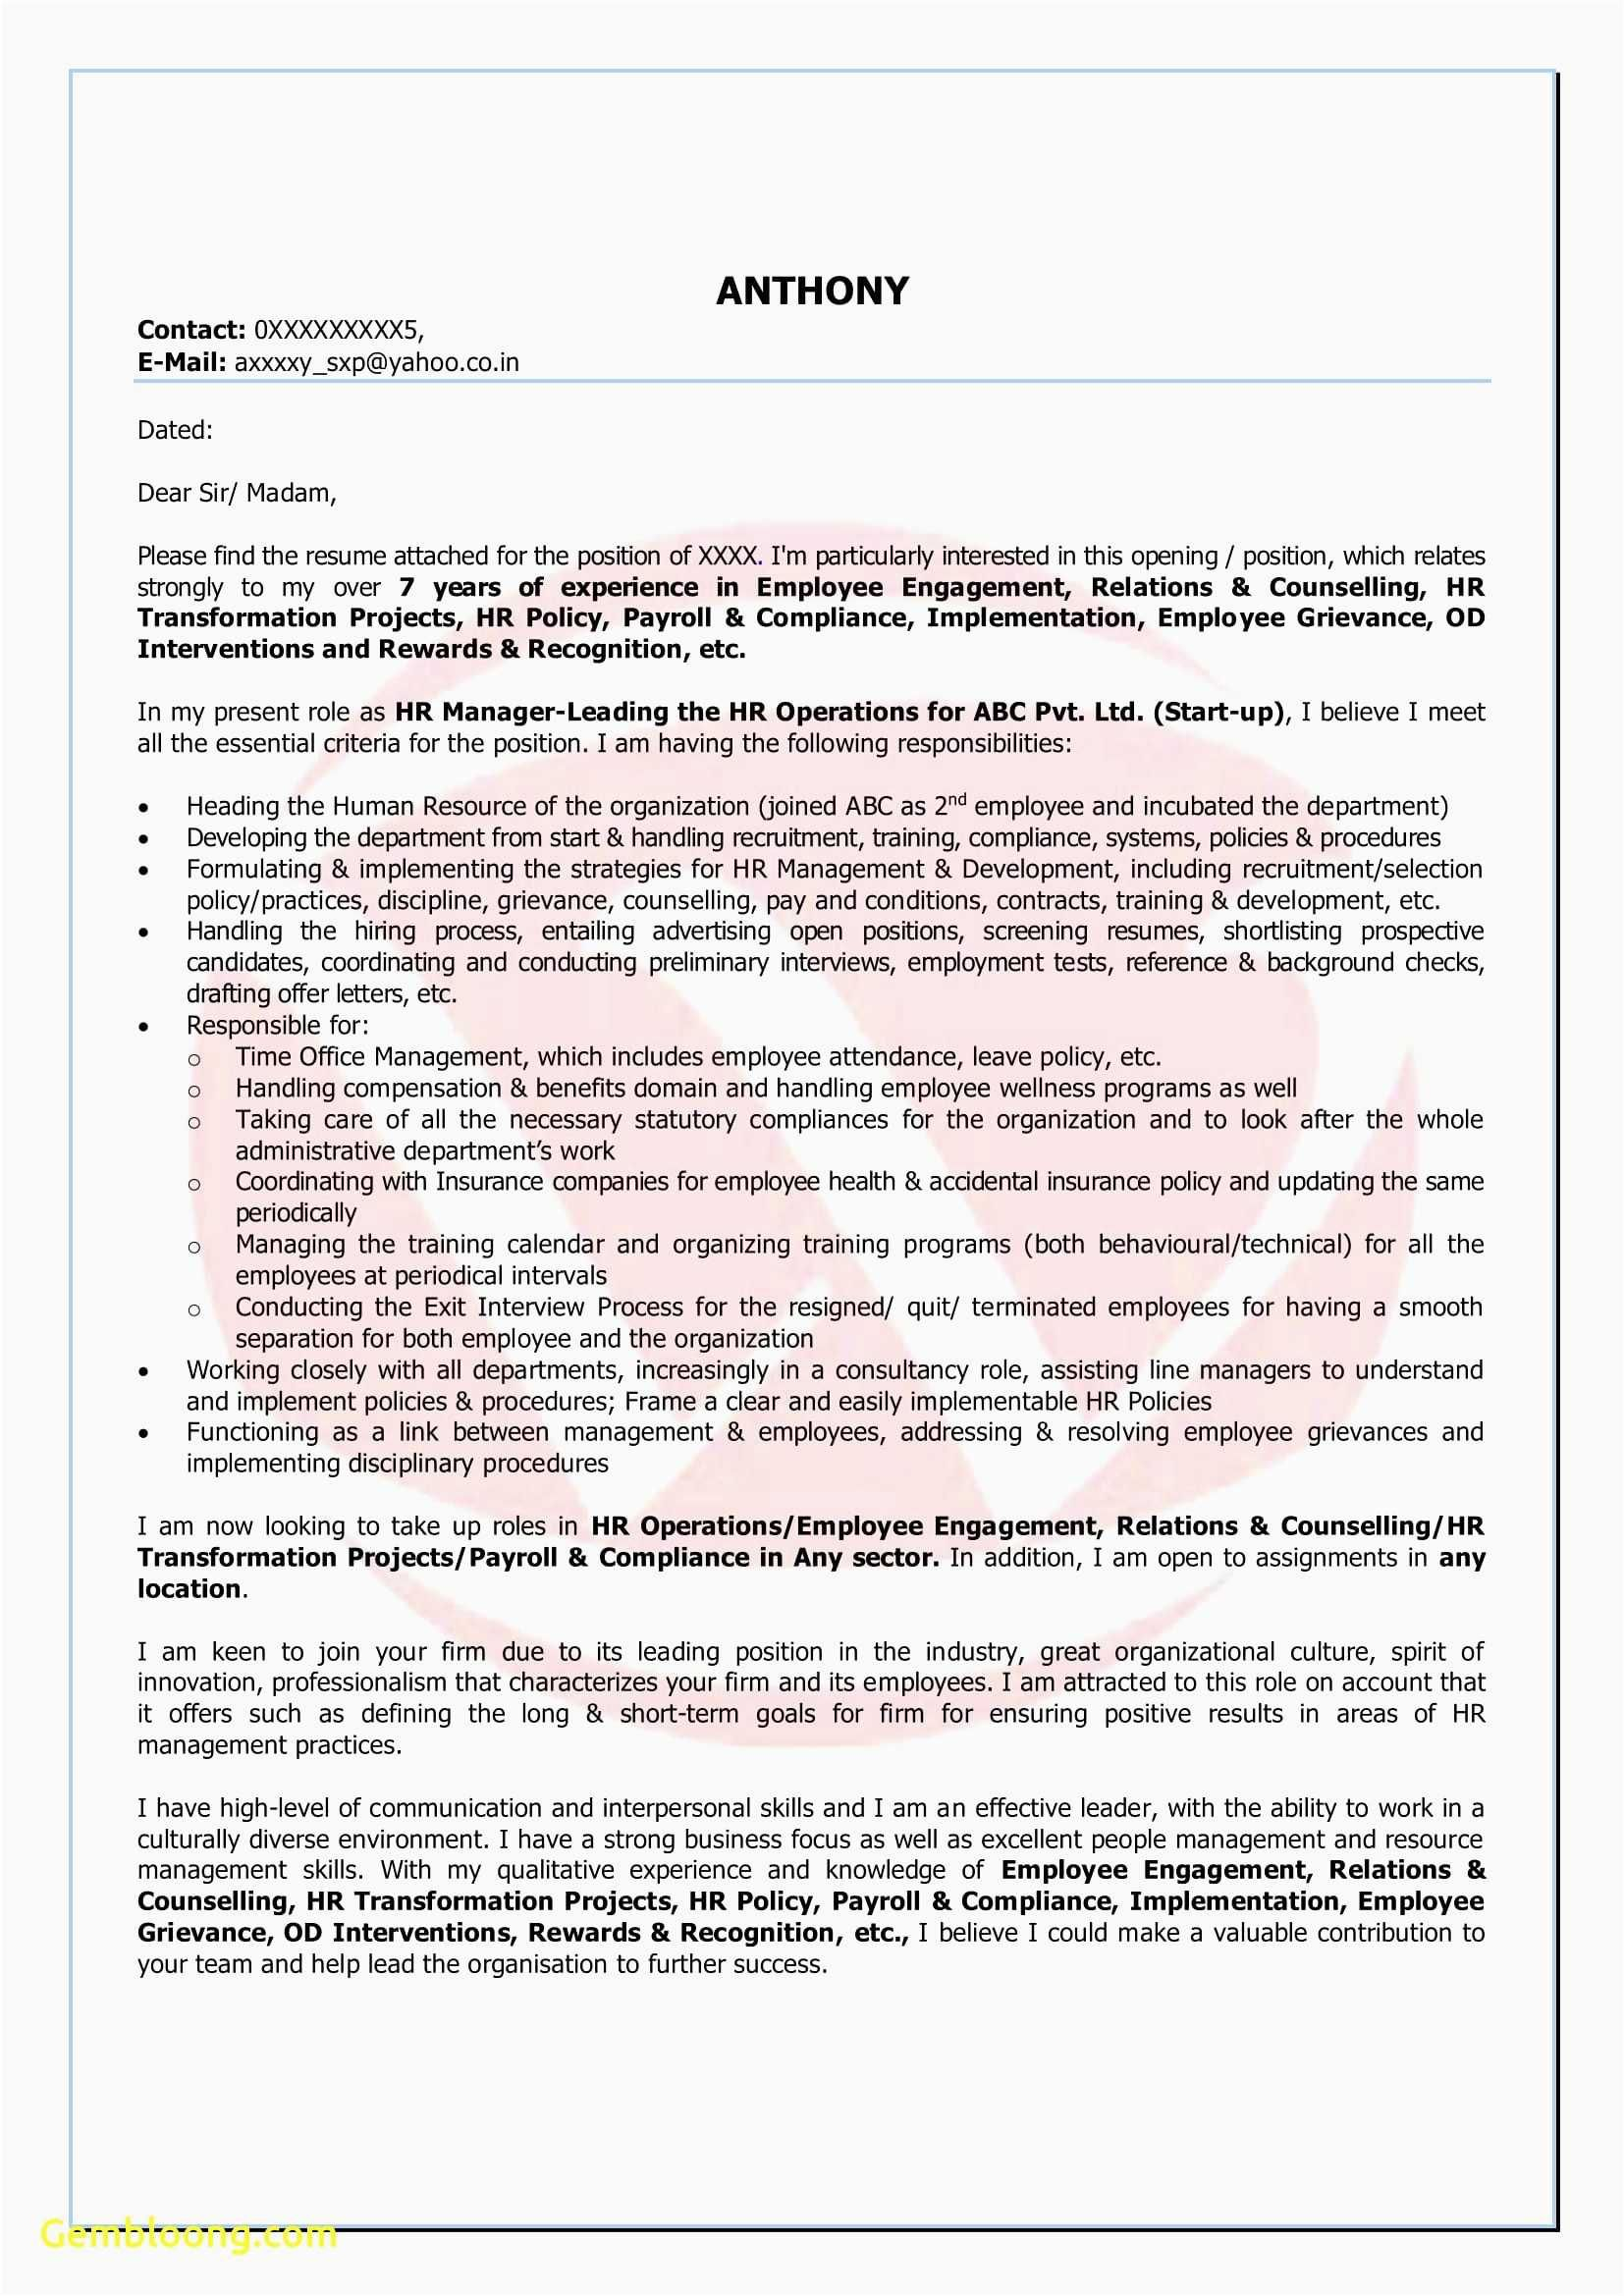 25 Cover Letter Generator In 2020 Resume Template Examples